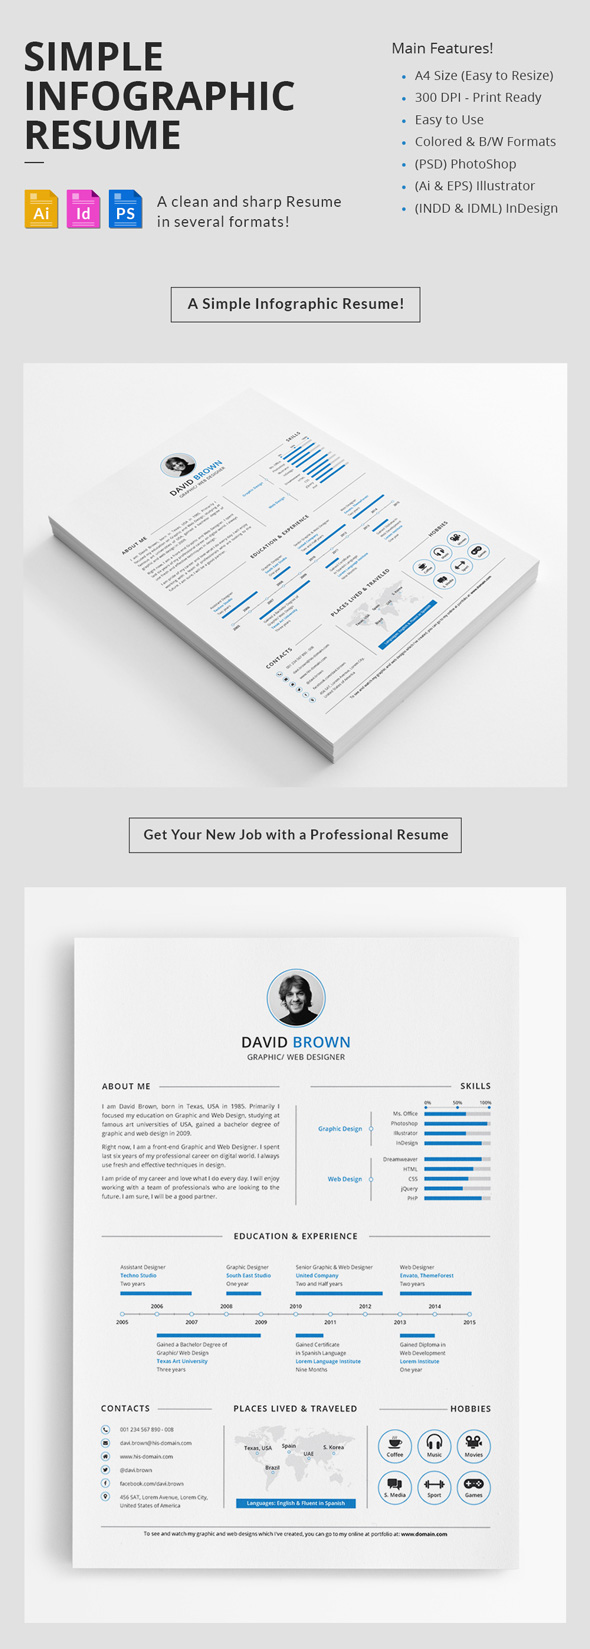 minimal resume template design - Resume Templates For Graphic Designers